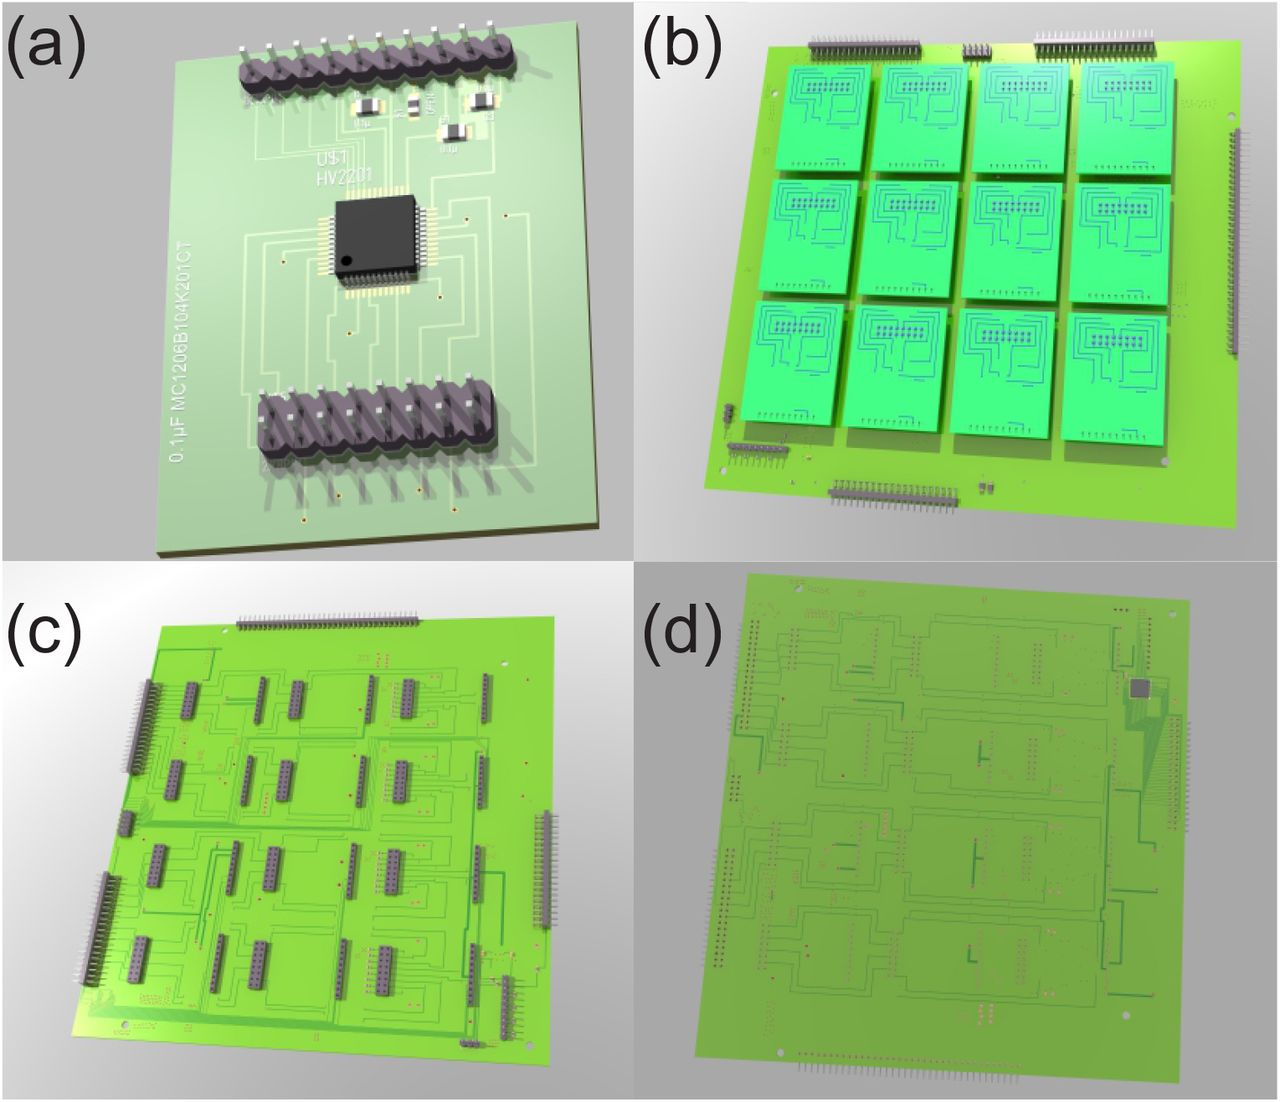 Open Hardware for neuro-prosthesis research: A study about a